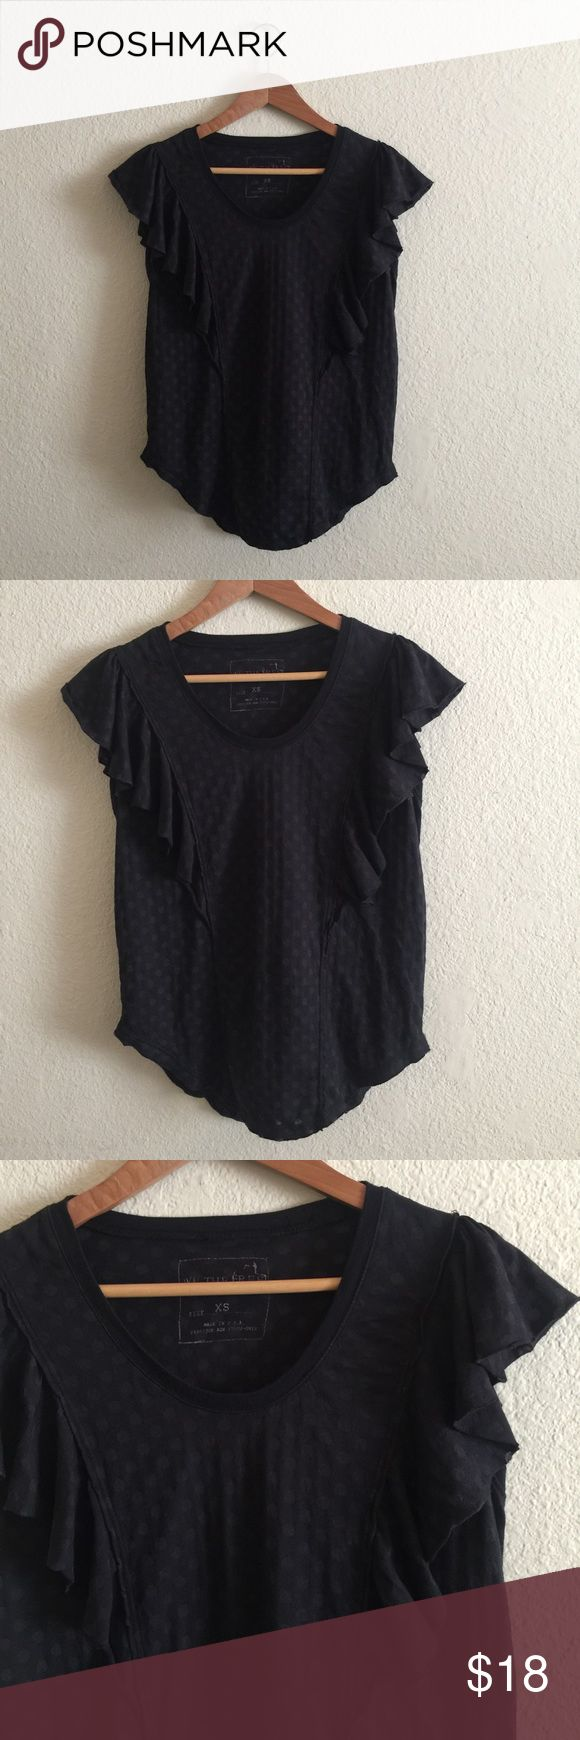 FREE PEOPLE women's Polka dot Blouse top XS We the Free women's Free People black Polka dot shirt.  Size: X Small . In Great condition! If you have any questions feel free to ask! Free People Tops